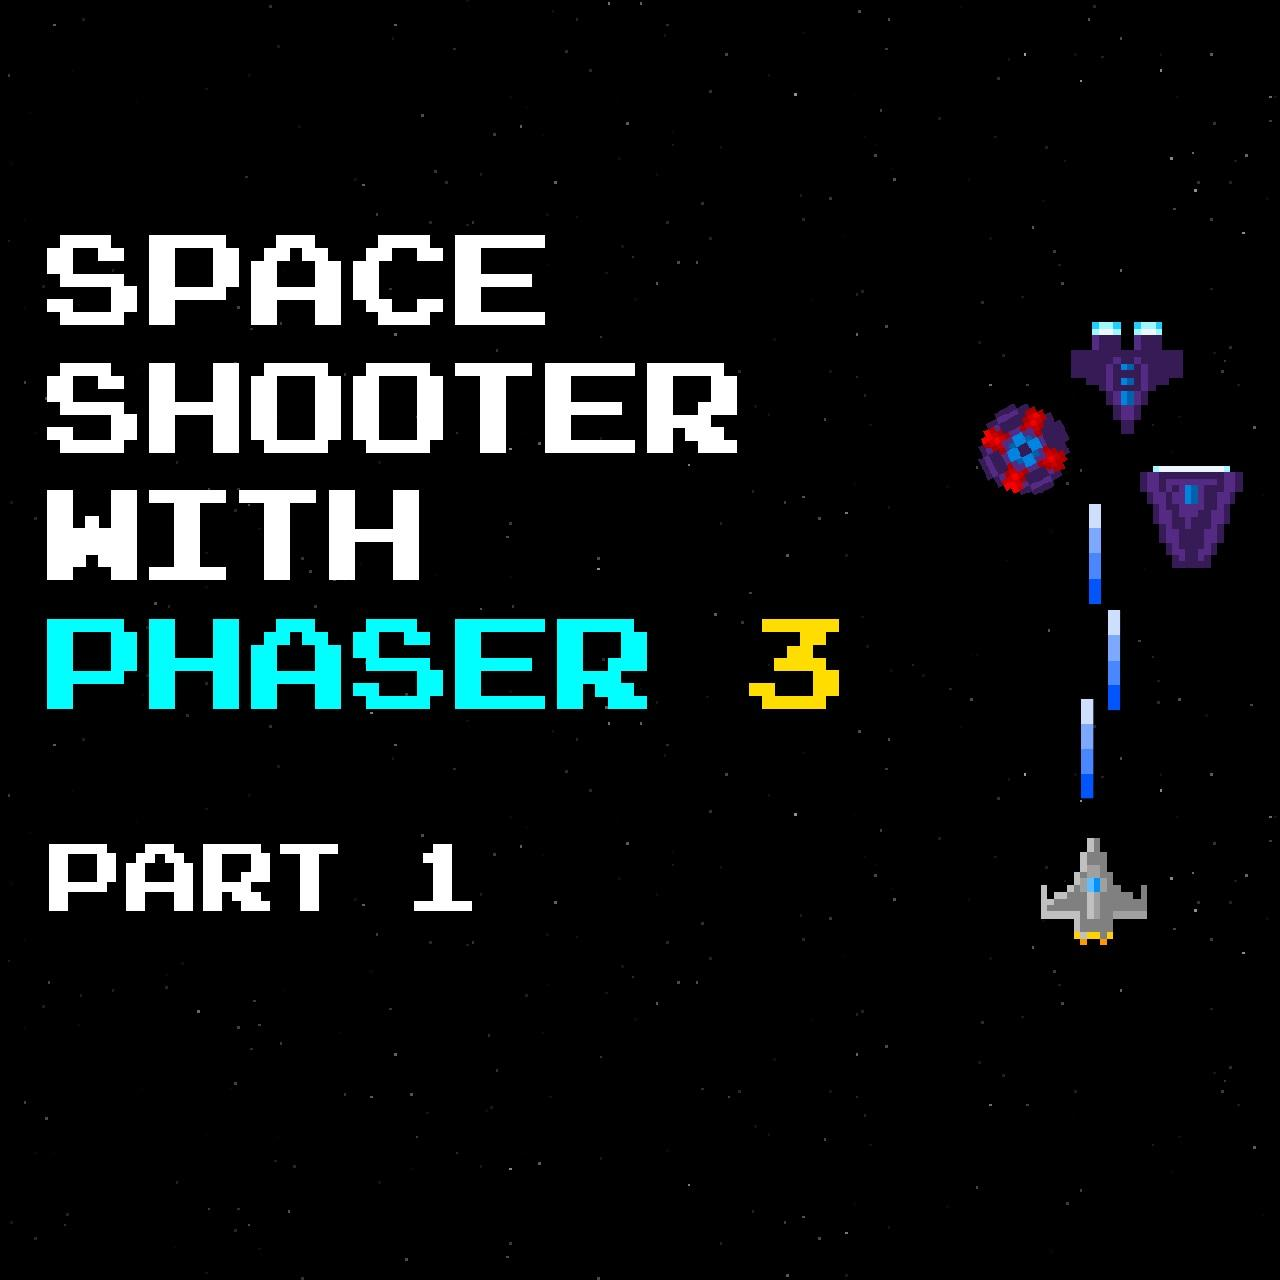 Build a Space Shooter with Phaser 3 - Part 1